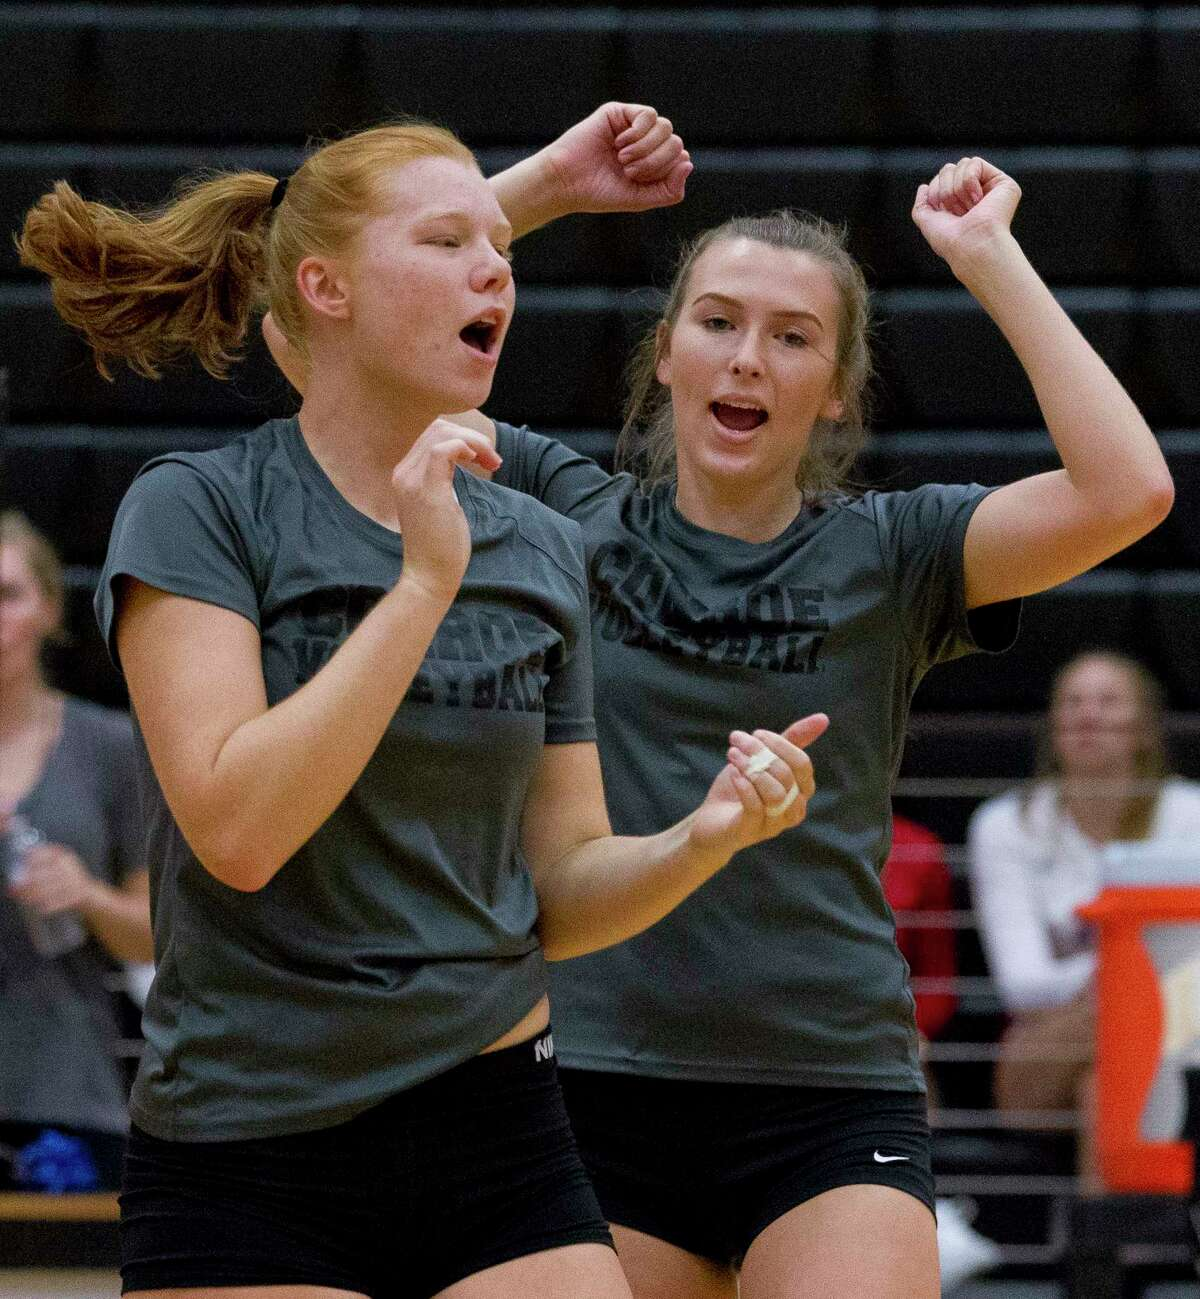 Jozy Rodel of Conroe celebrates after scoring a point during a high school volleyball scrimmage at Porter High School, Friday, Aug. 4, 2017, in Porter.